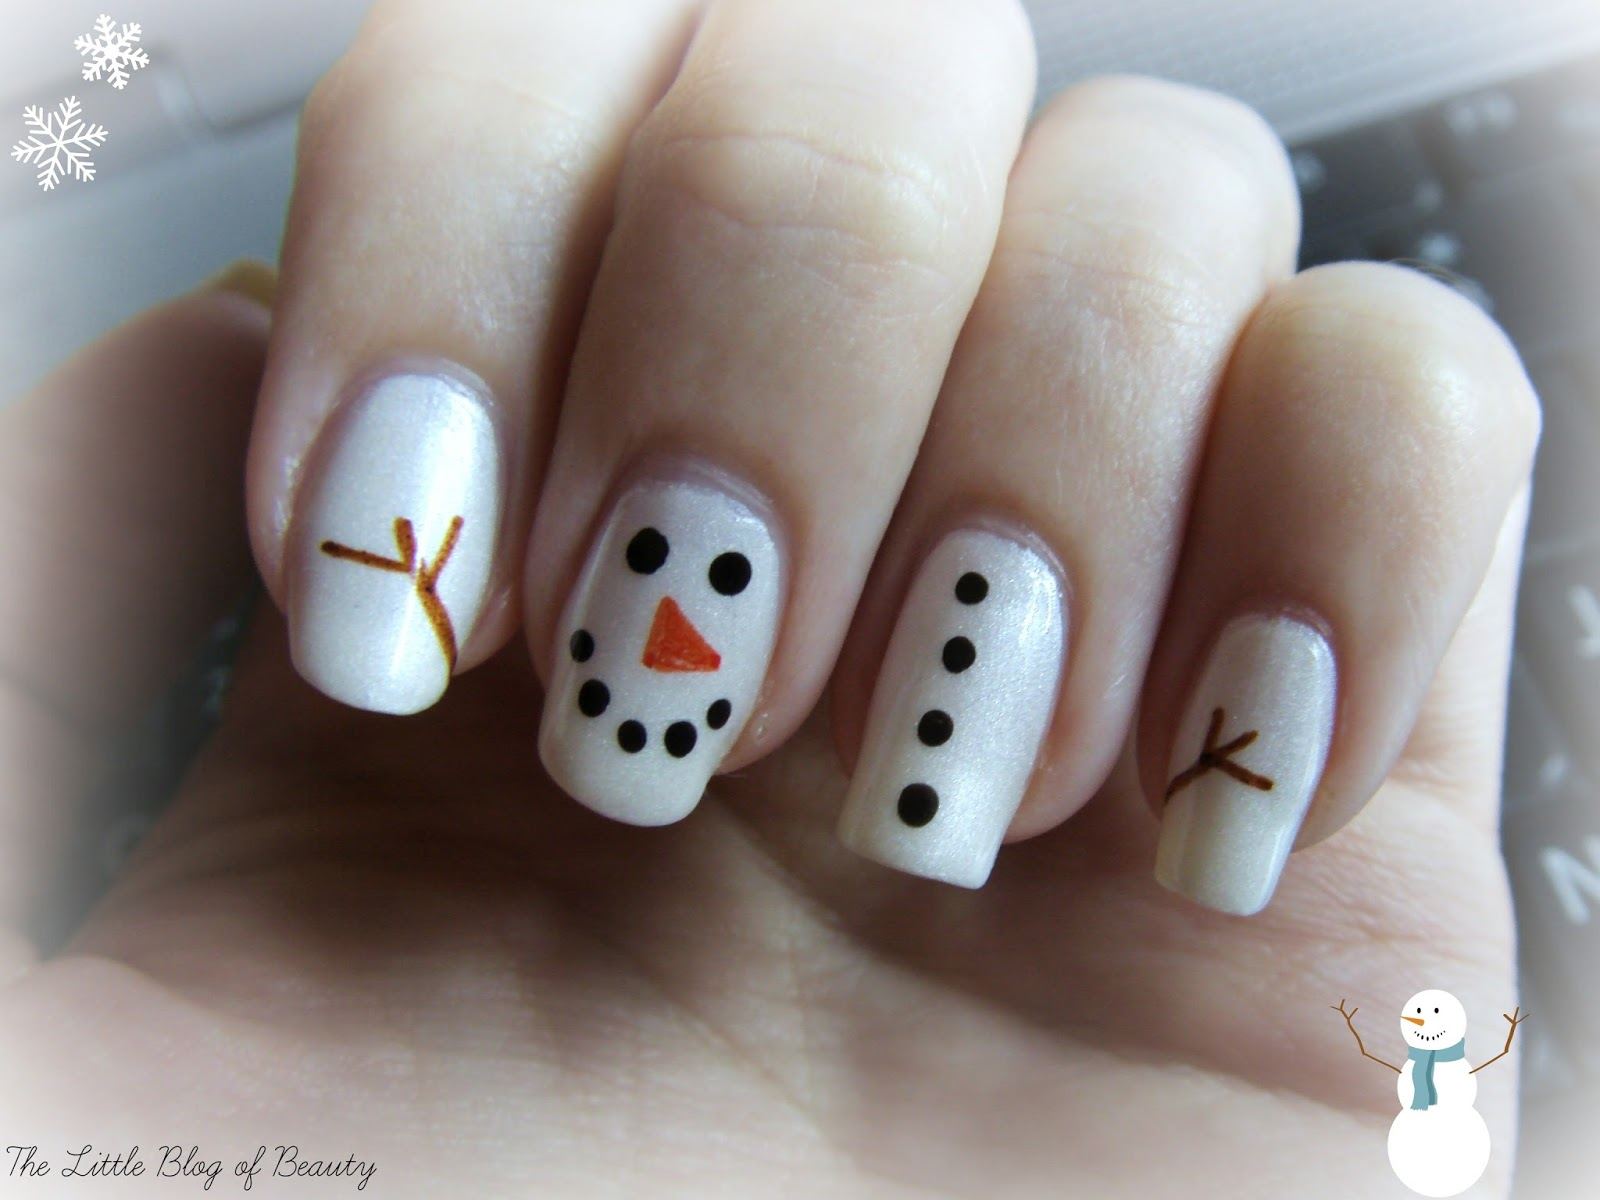 Christmas nail art frosty the snowman the little blog of beauty christmas nail art frosty the snowman prinsesfo Images